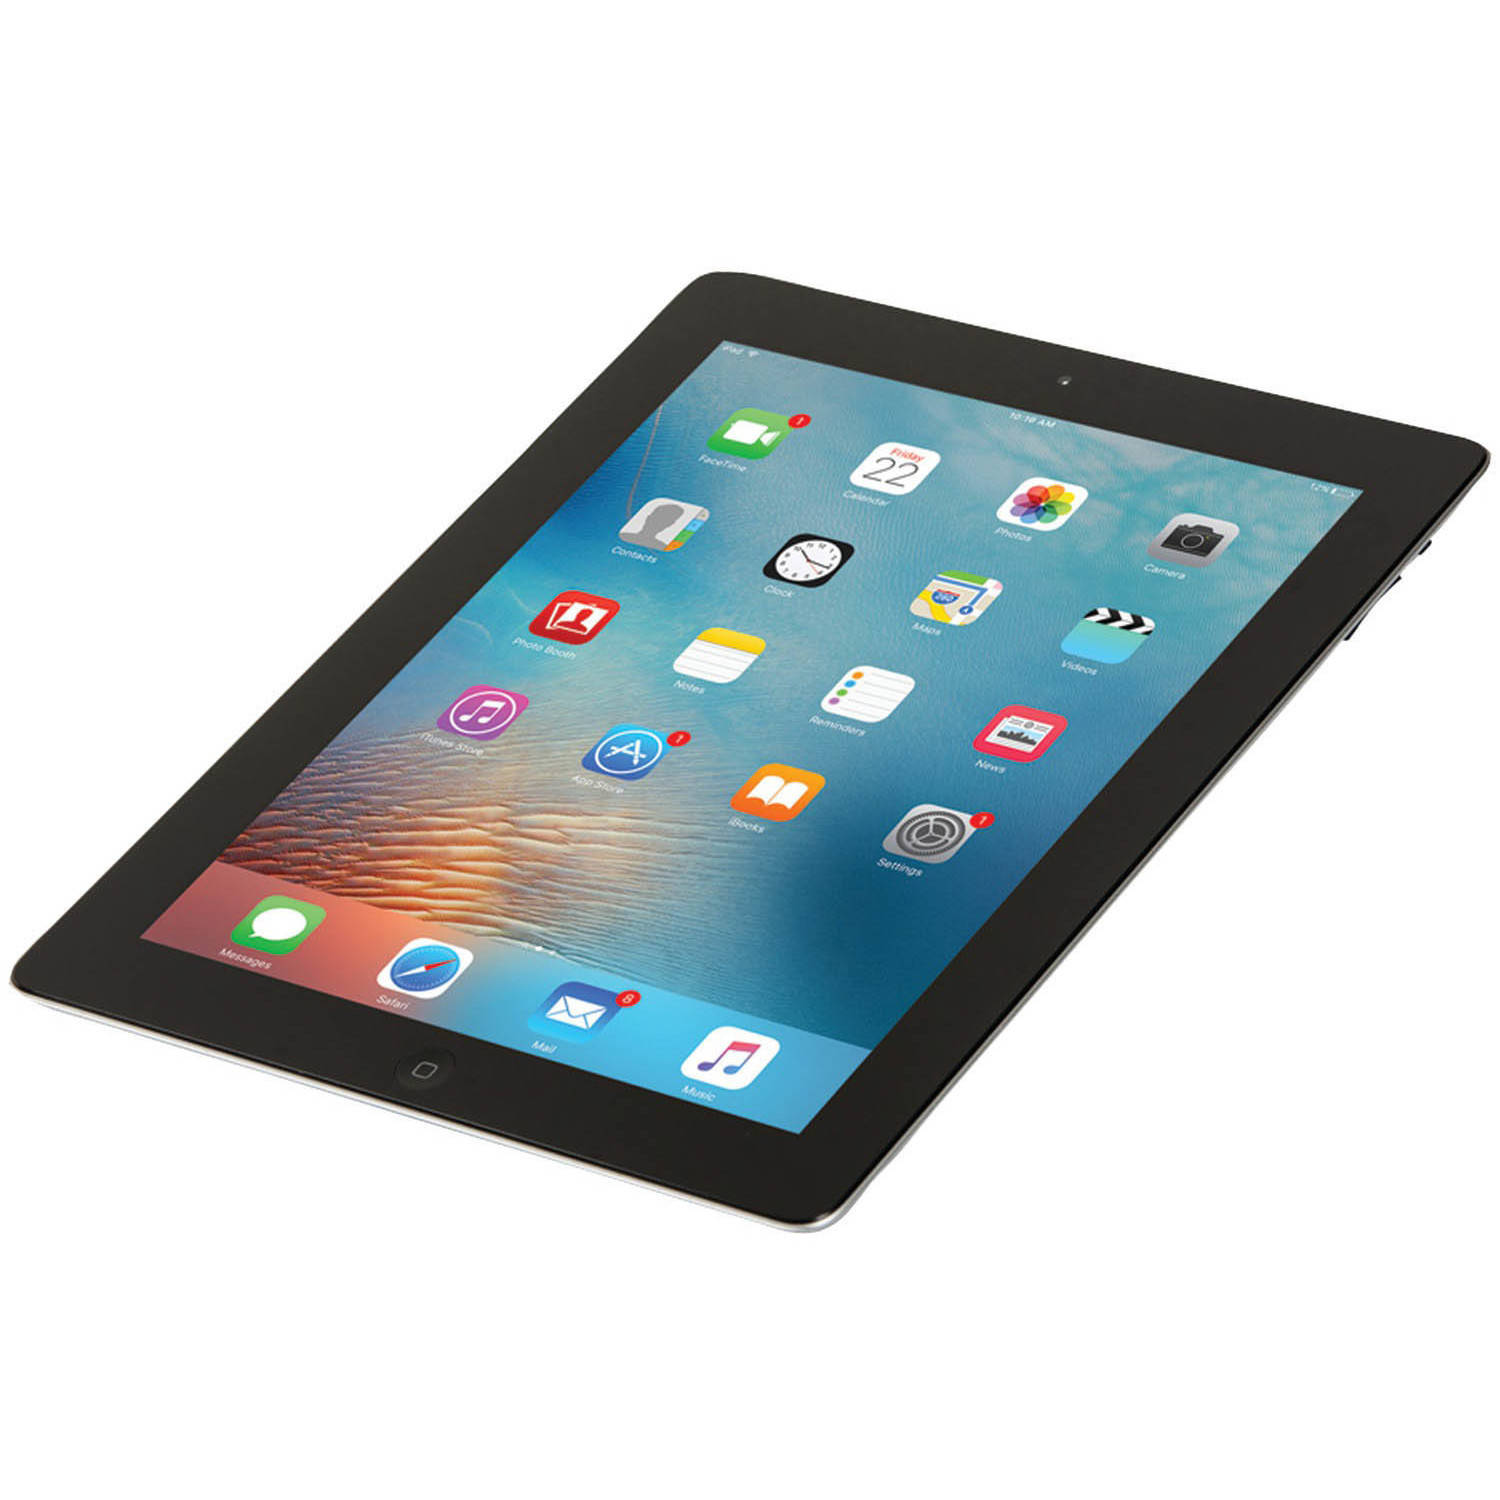 "Refurbished Apple iPad 2 MC769LL/A with WiFi 9.7"" Touchscreen Tablet Featuring Apple iOS 8 Operating System"